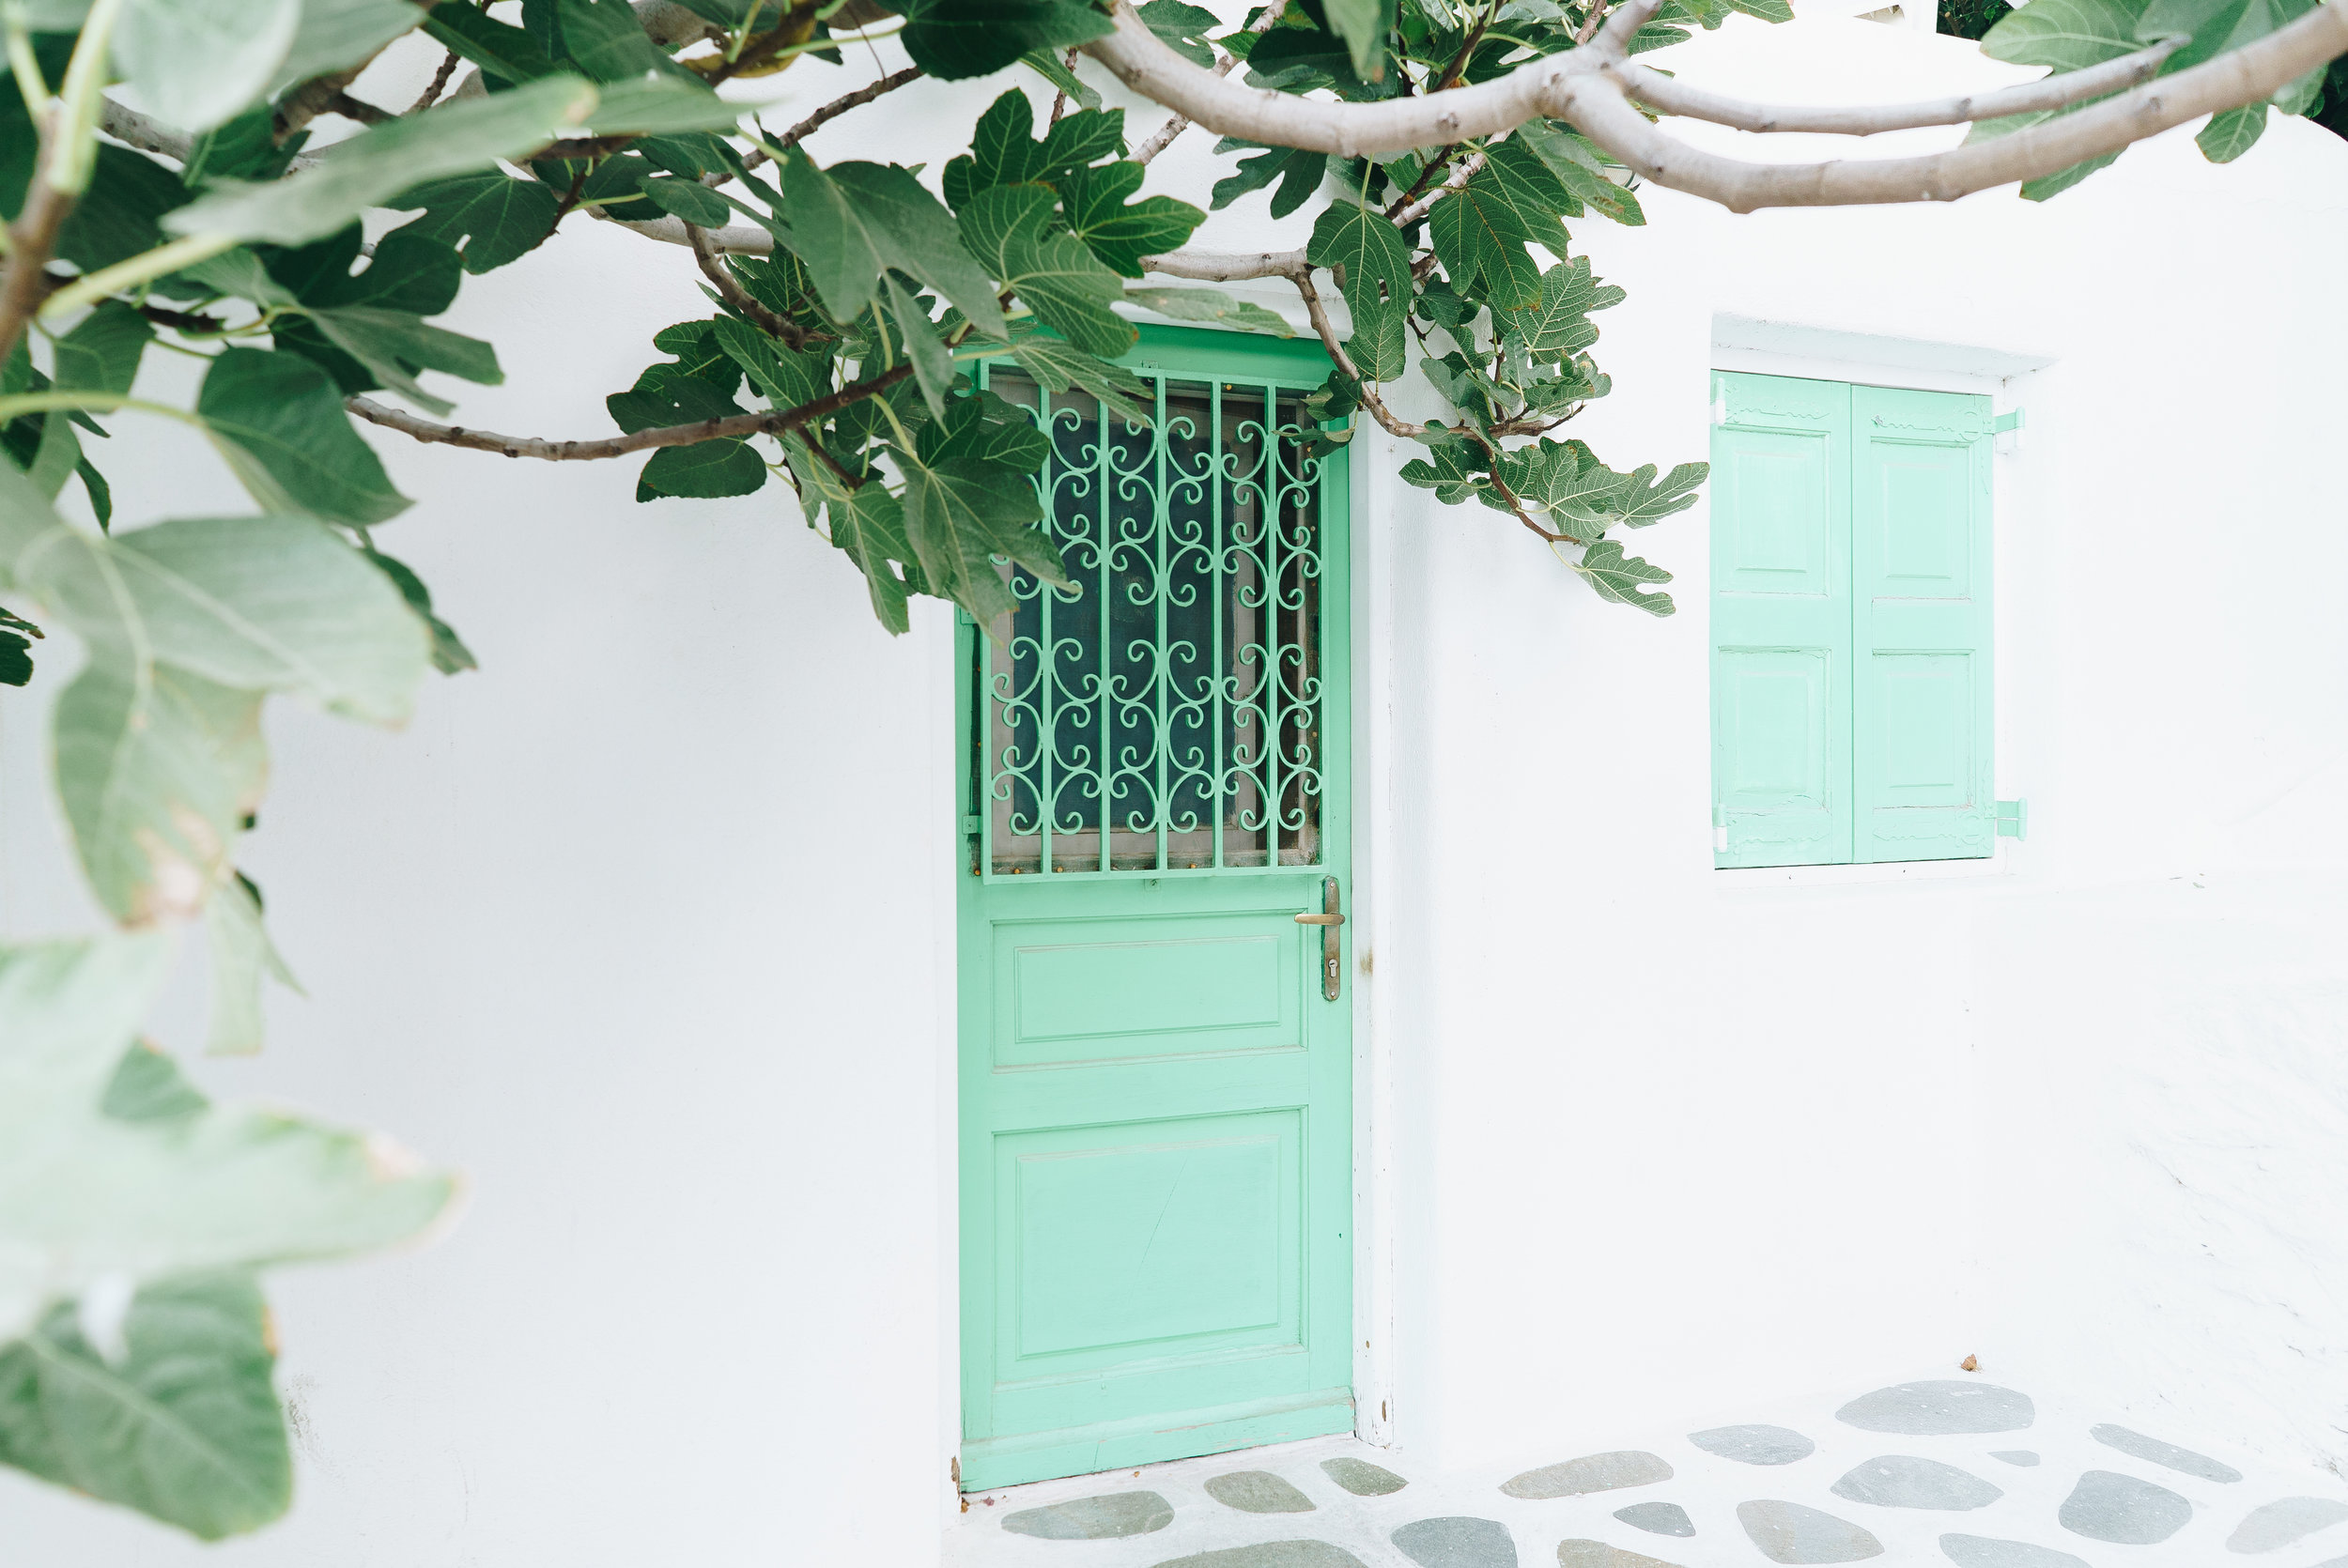 White buildings with colourful doors everywhere.